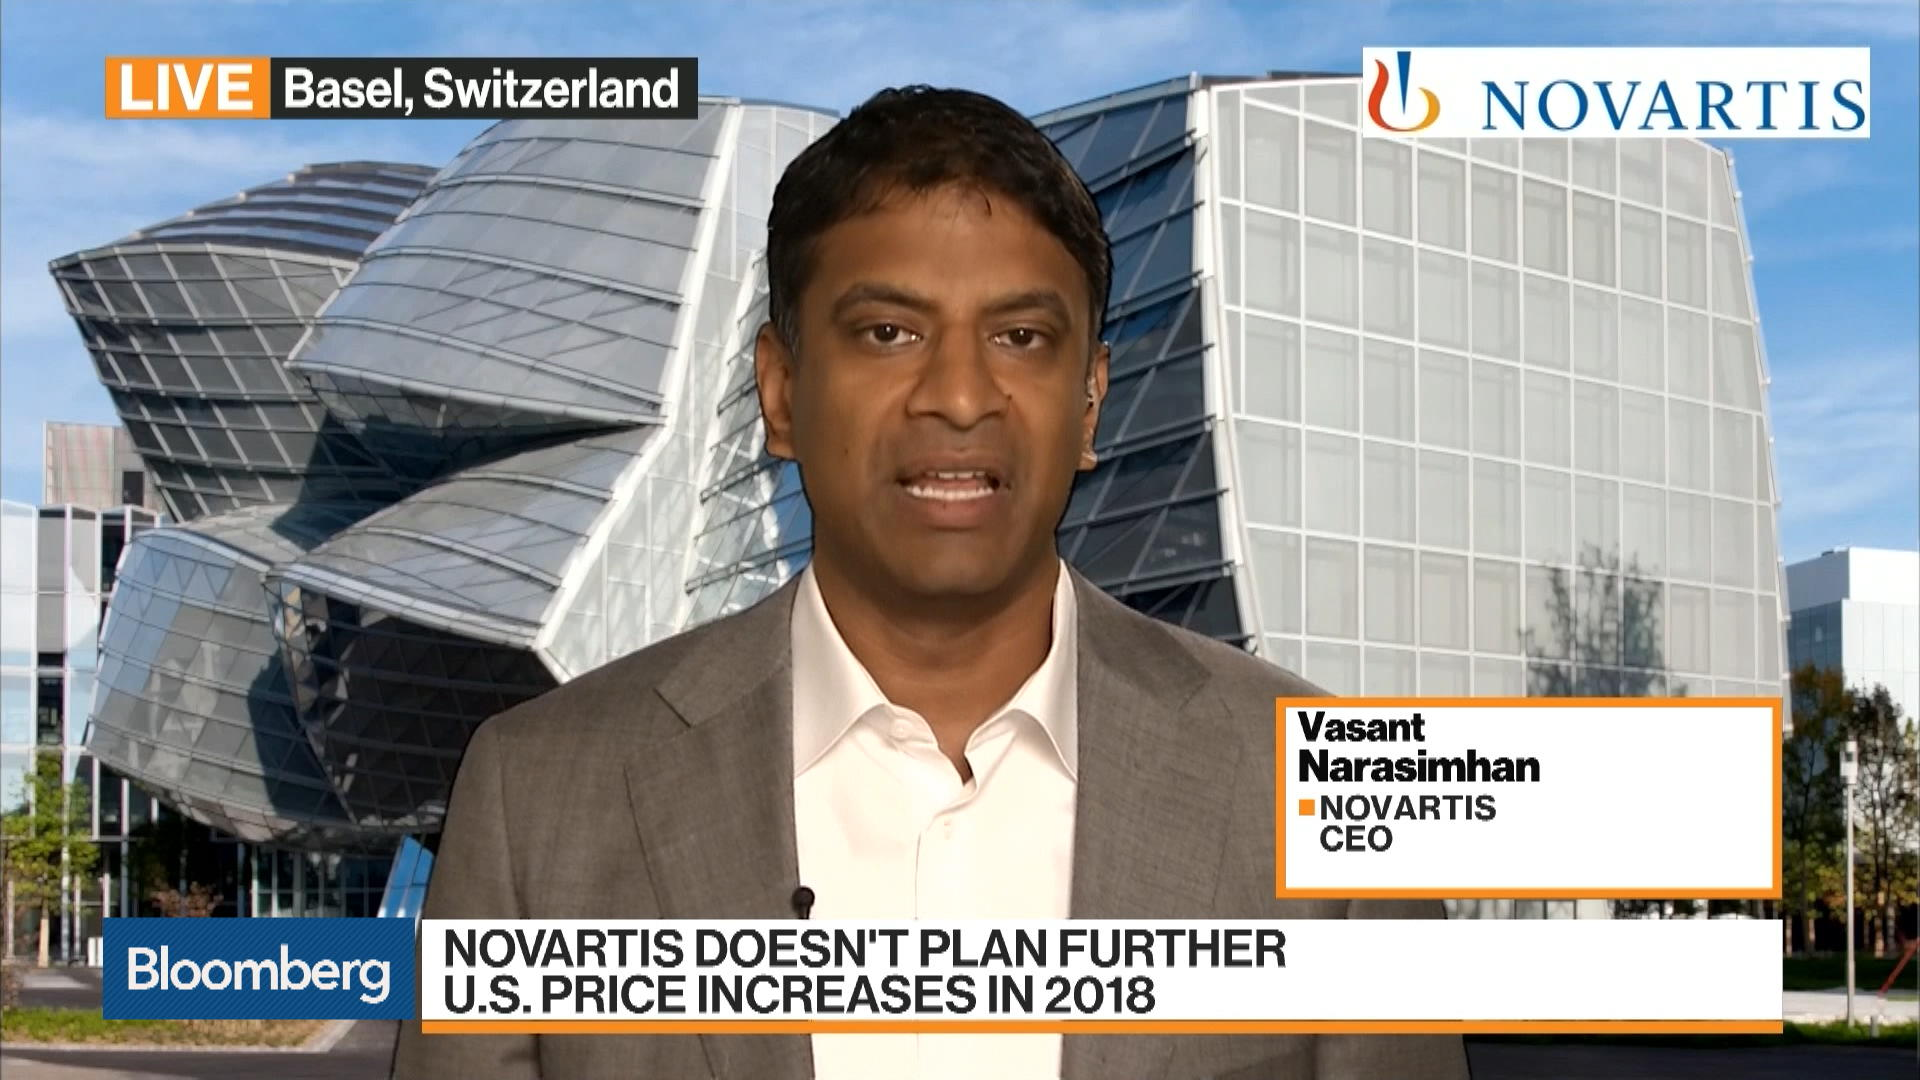 Novartis CEO Says It's `Prudent' to Pull Back From Further Price Increases – Bloomberg